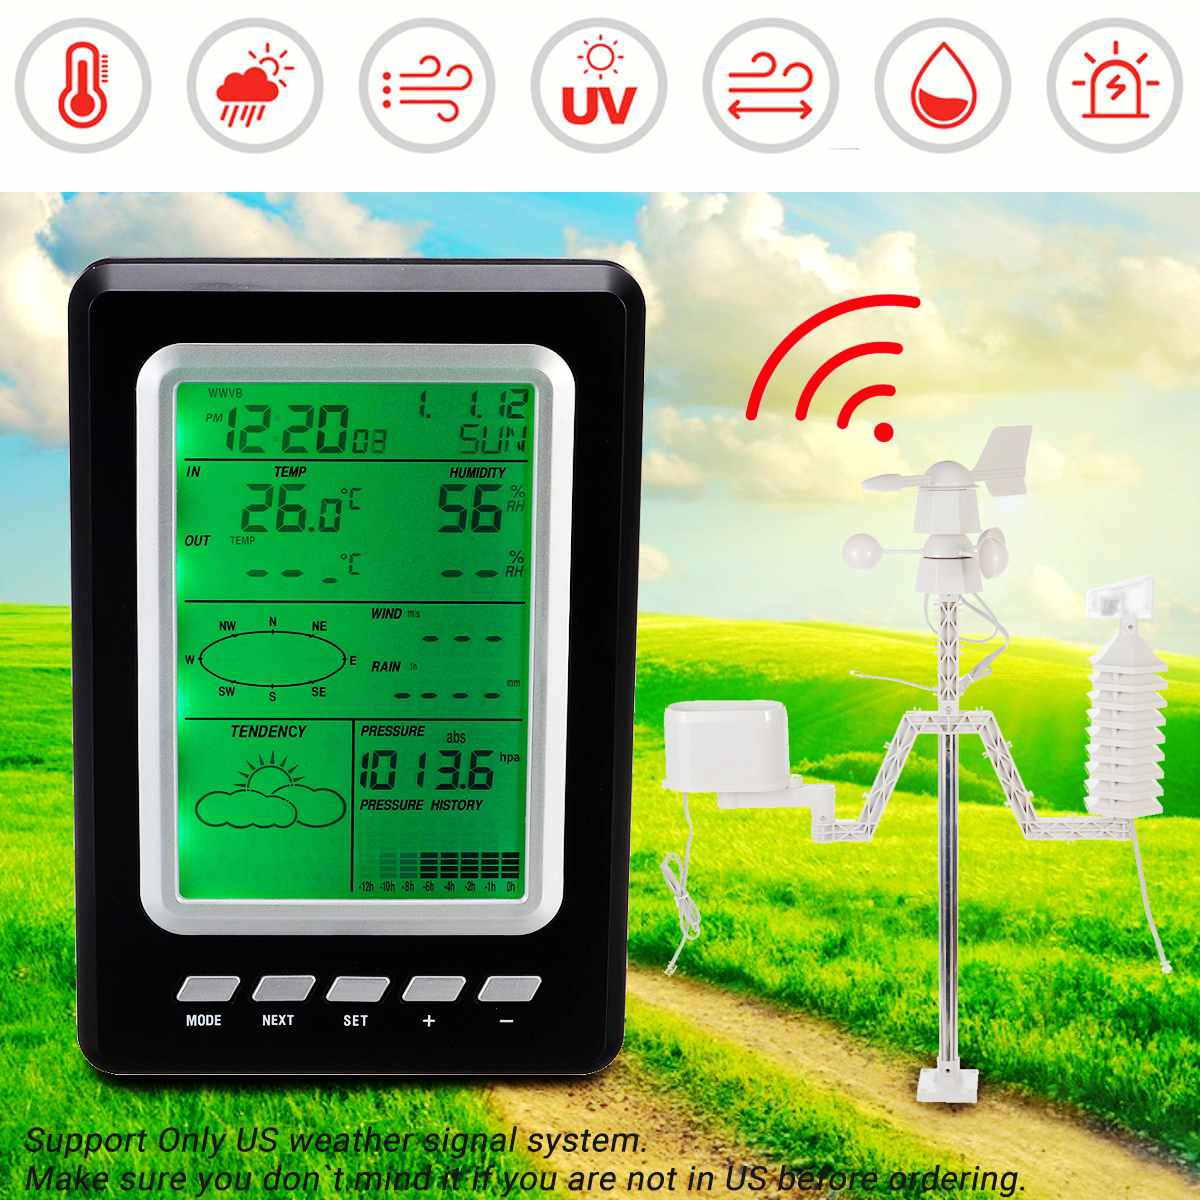 Professional Wind Home Weather Station Wireless Solar LCD Temperature Forecast Instrument for Outdoor IndoorProfessional Wind Home Weather Station Wireless Solar LCD Temperature Forecast Instrument for Outdoor Indoor